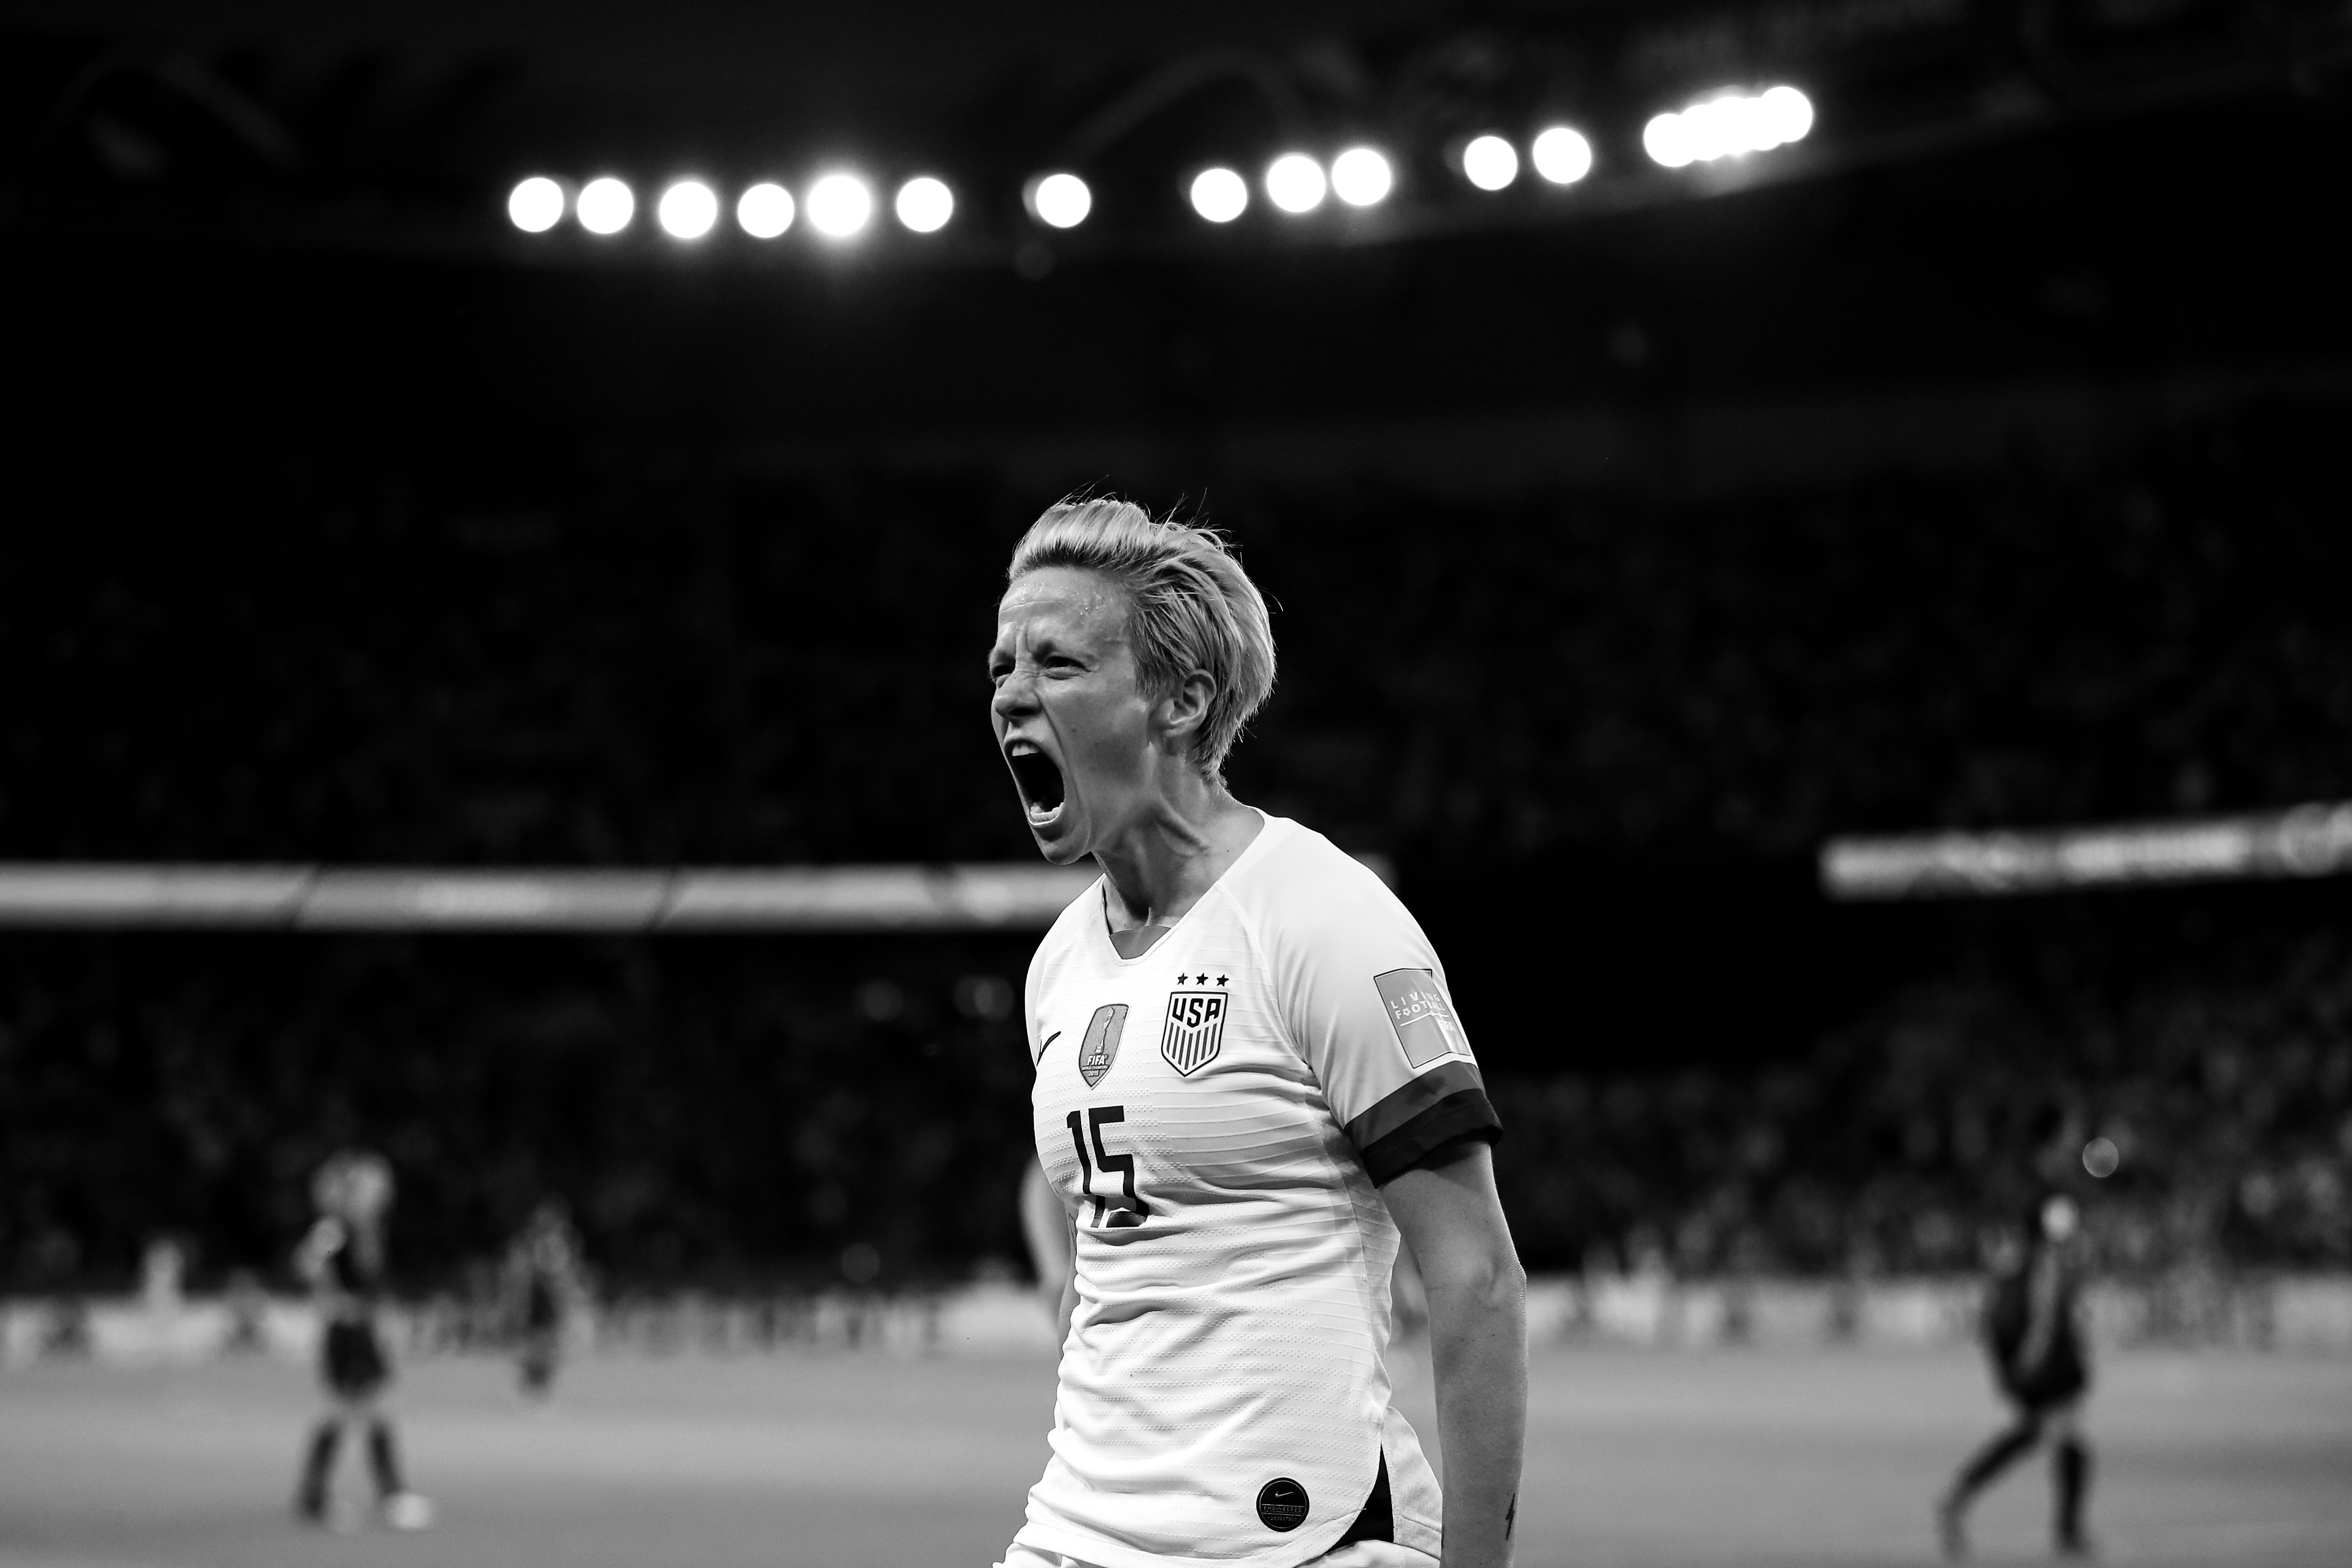 Megan Rapinoe of the USA celebrates after scoring her team's second goal during the 2019 FIFA Women's World Cup France Quarter Final match between France and USA. (Photo by Richard Heathcote/Getty Images)